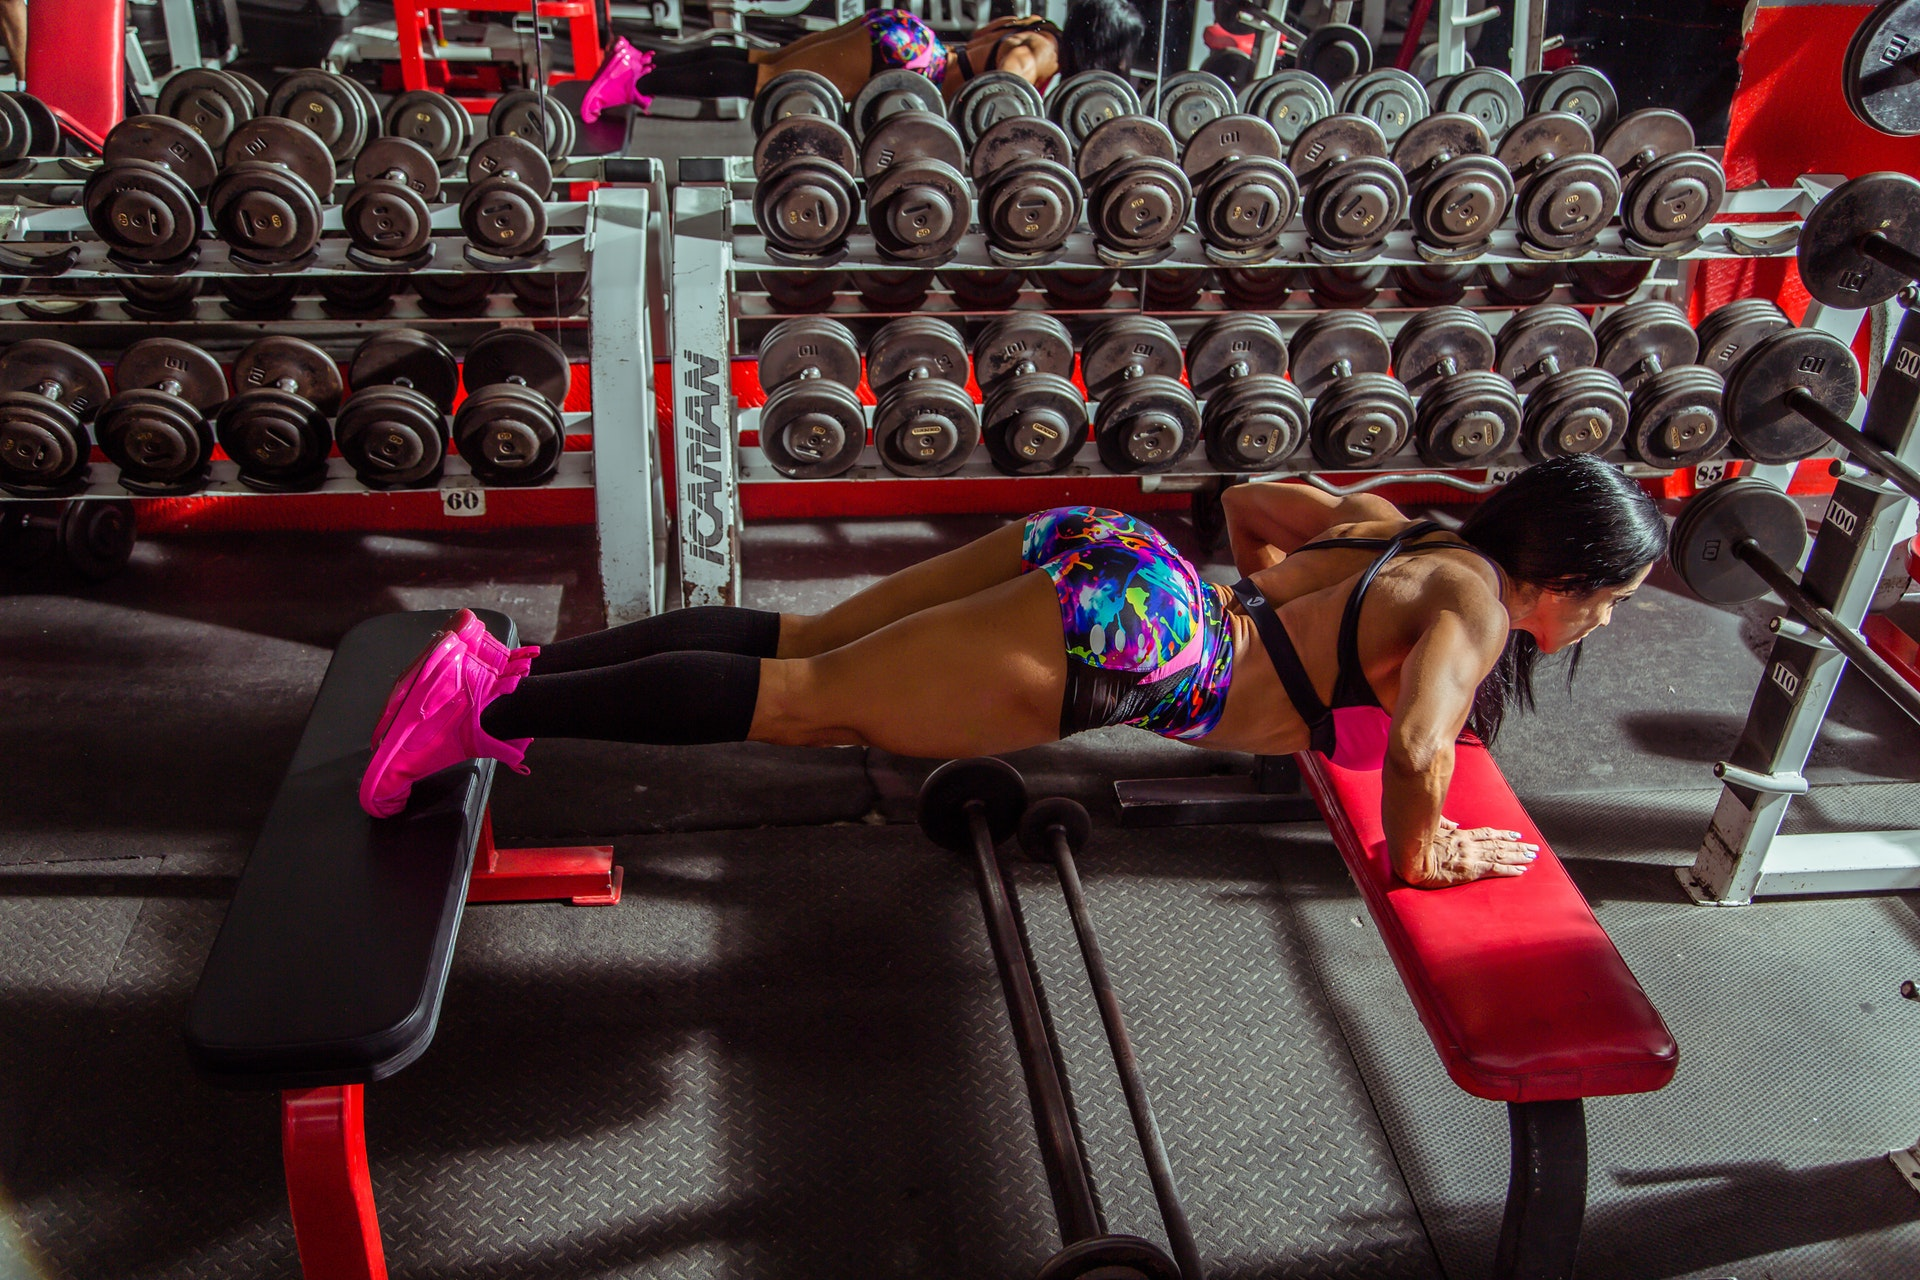 woman-doing-push-ups-on-sit-up-benches-1638336